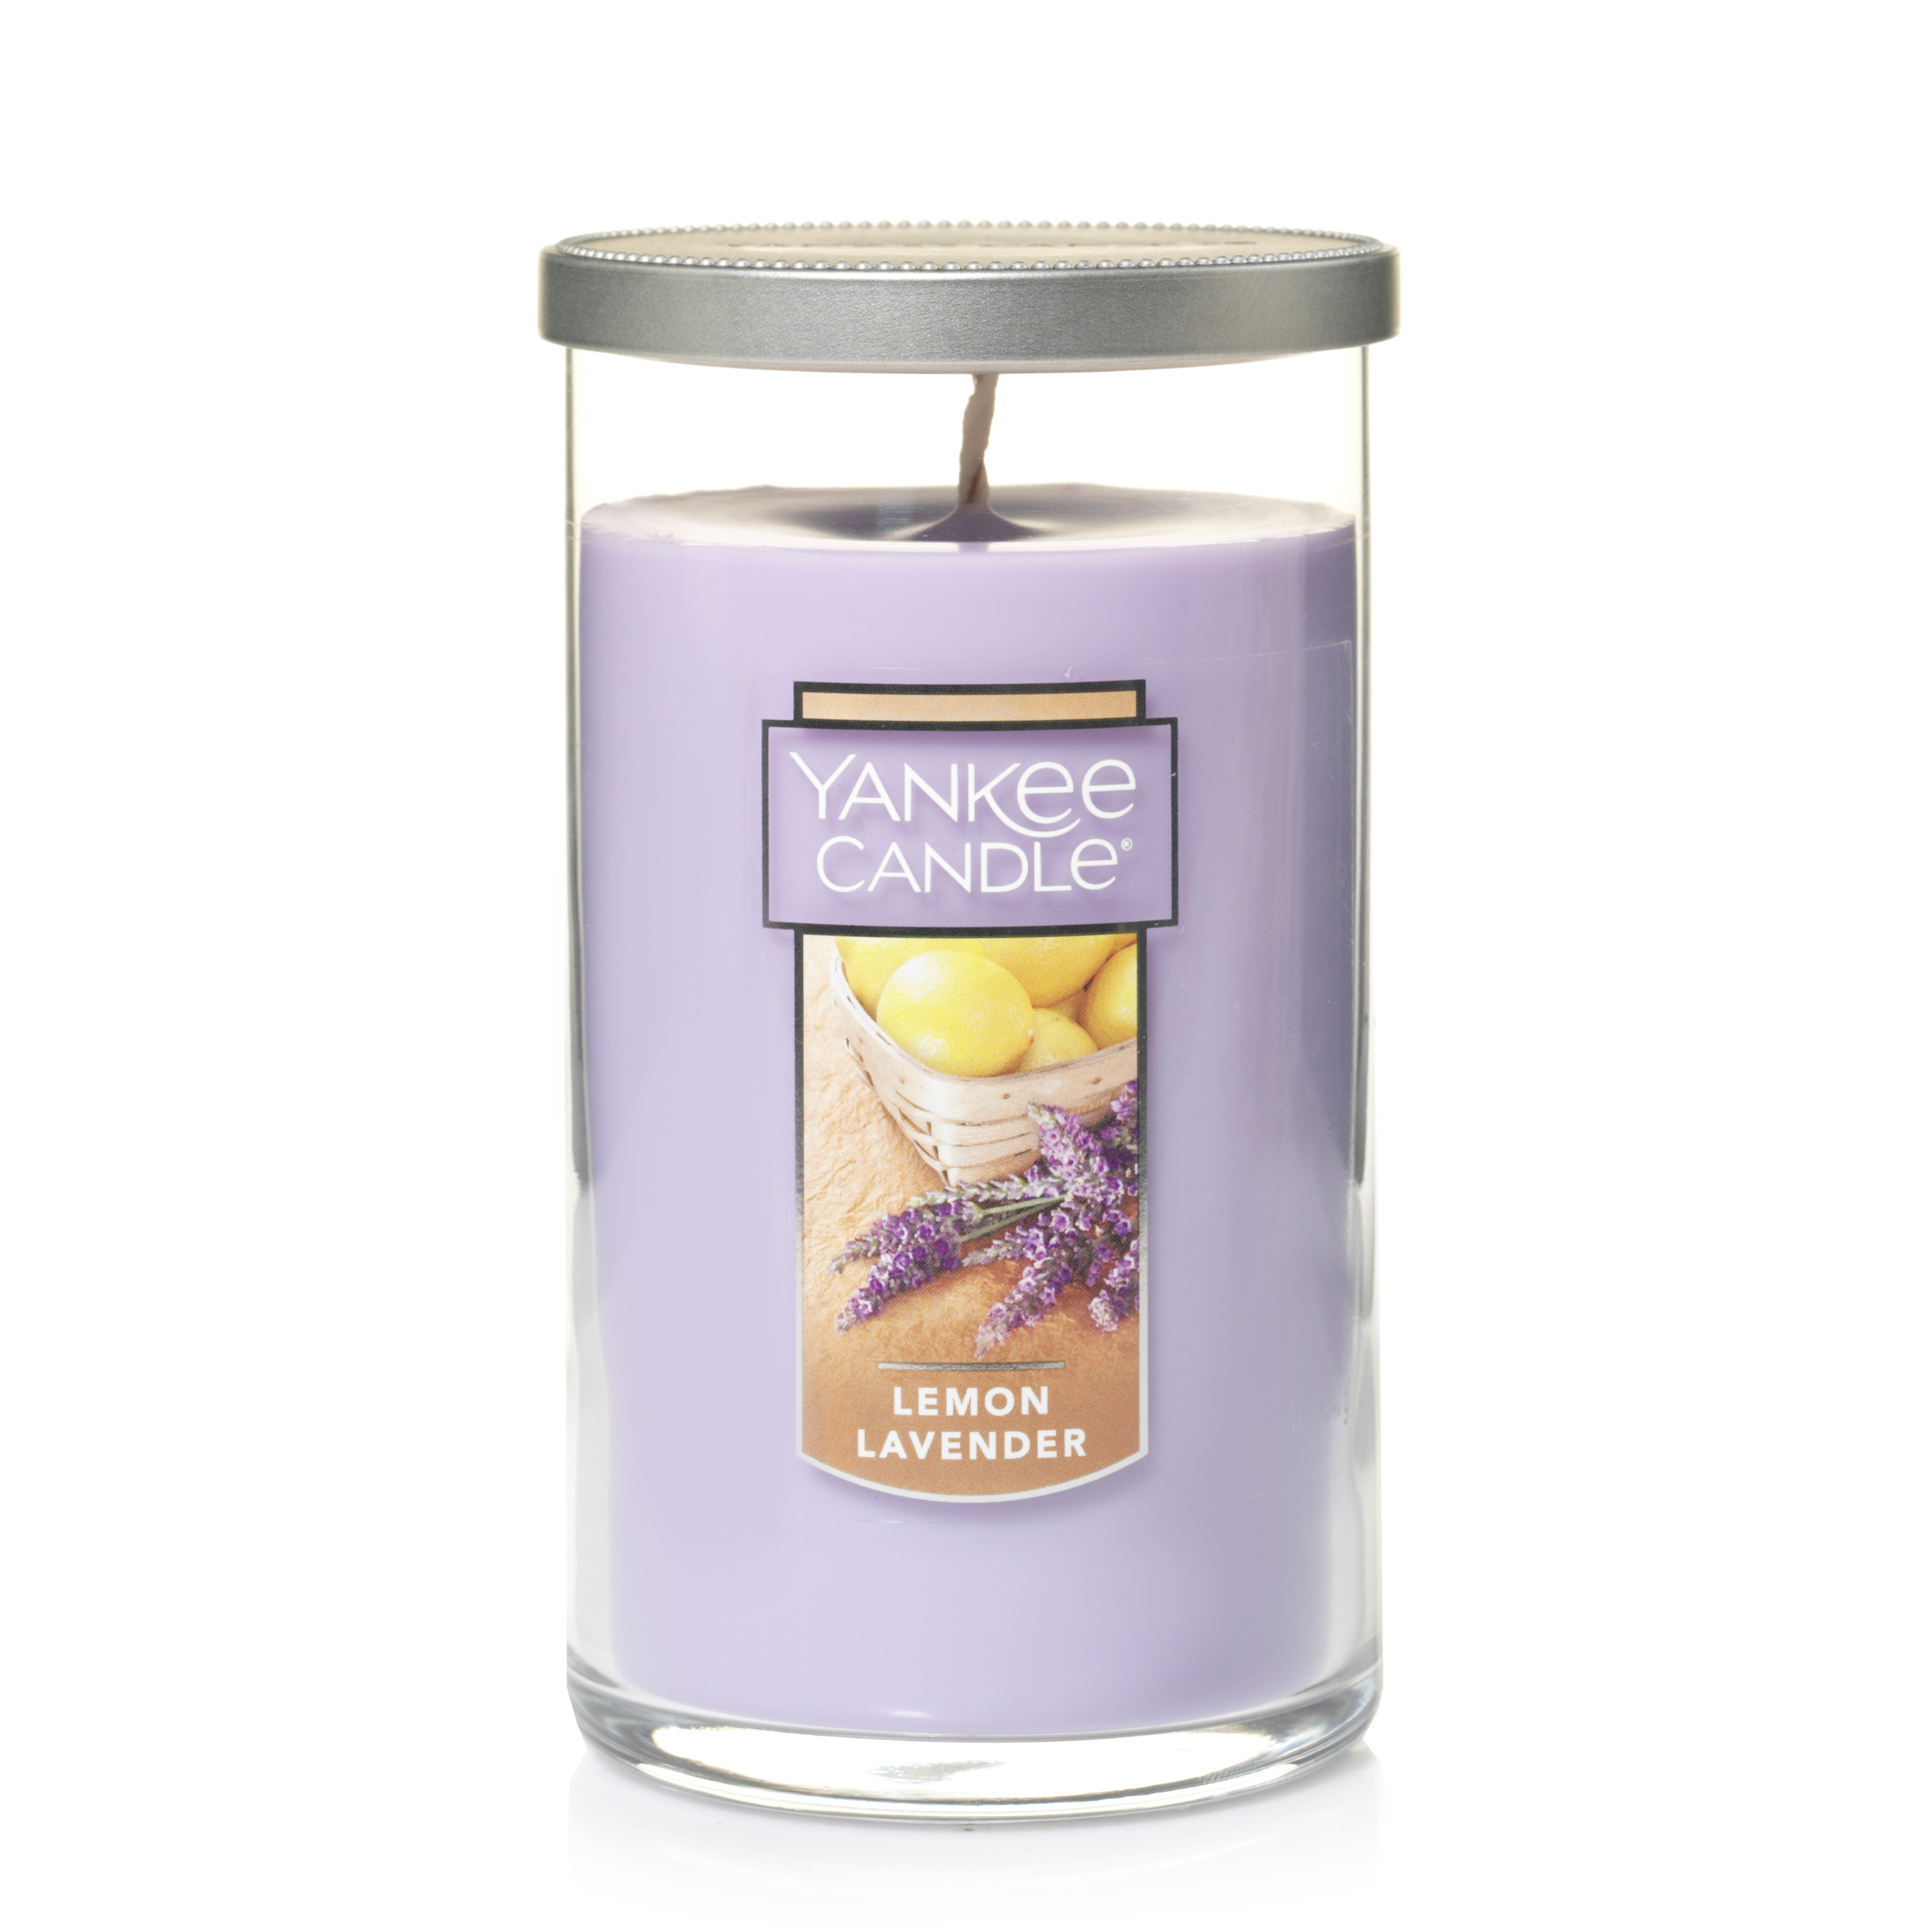 Yankee Candle Large 2-Wick Tumbler Candle, Lemon Lavender by Newell Brands